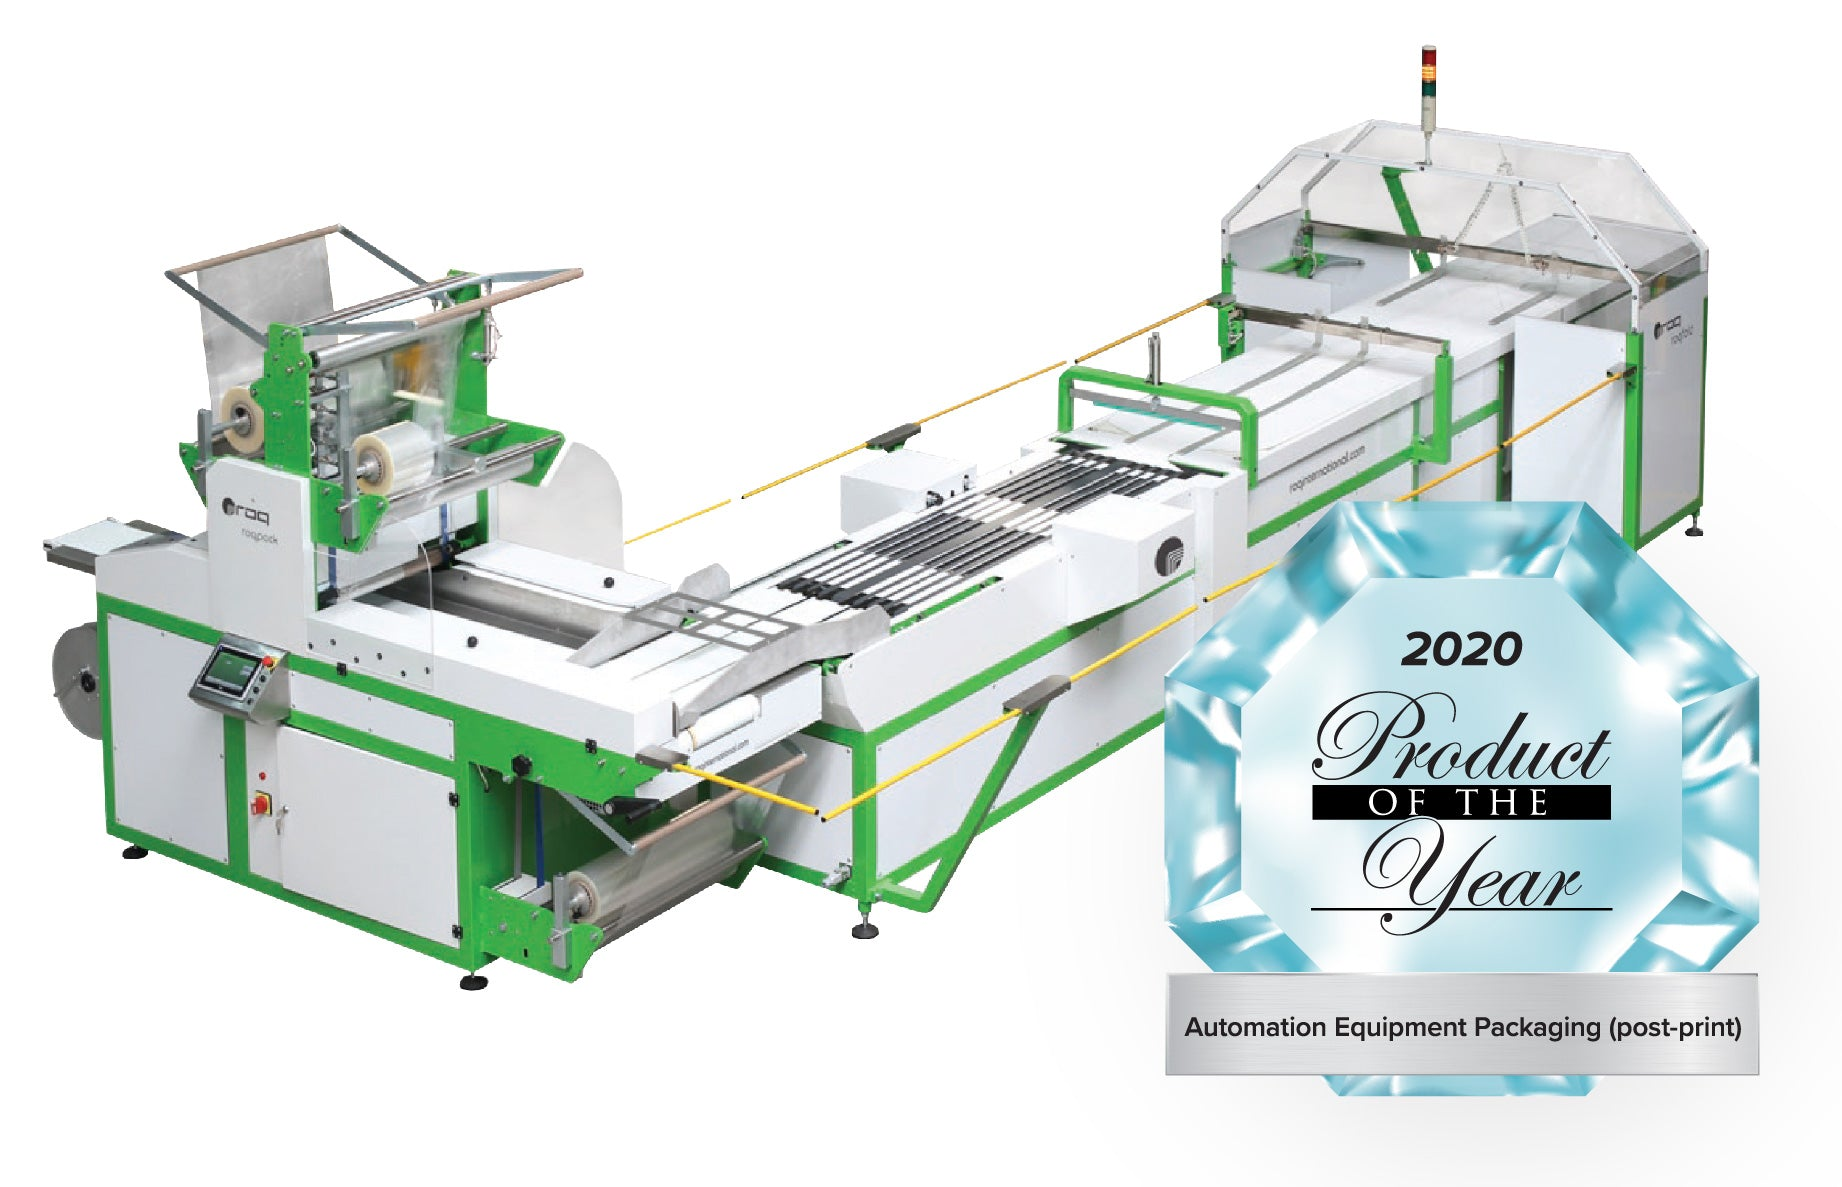 Photo of the ROQ Folding Line as Product of the Year Winner with Product of the Year logo